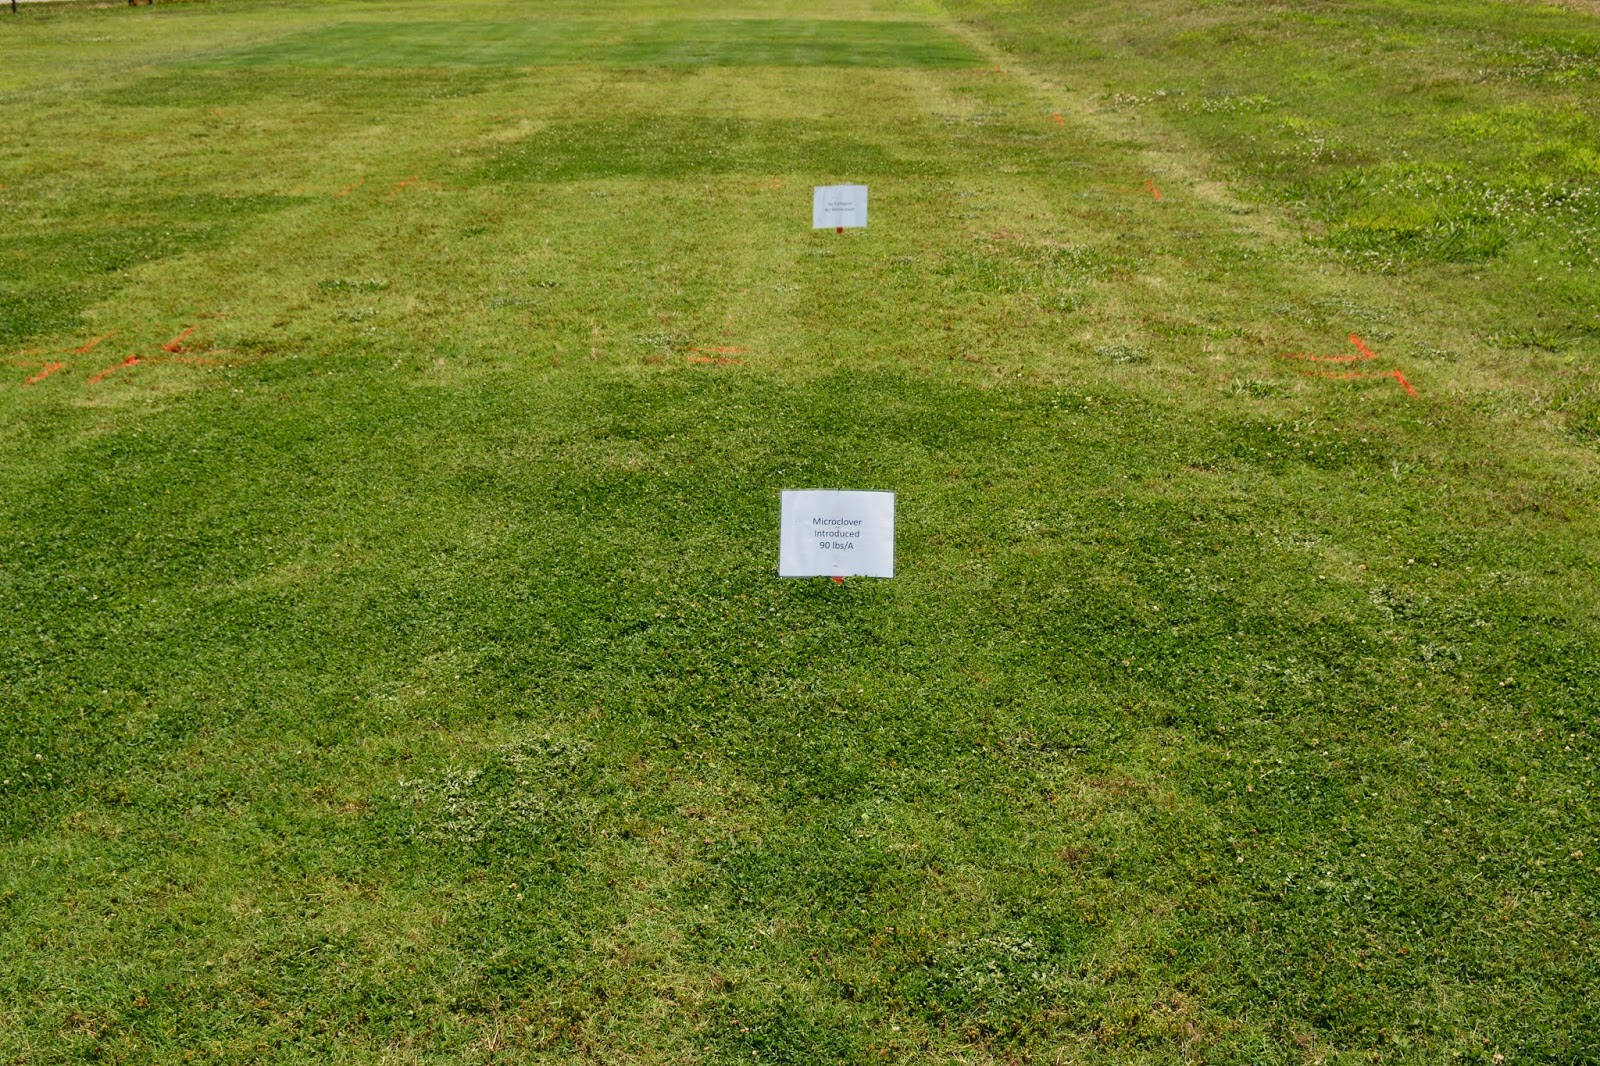 Bmps To Reduce Runoff And Fertilizer Use In Lawns